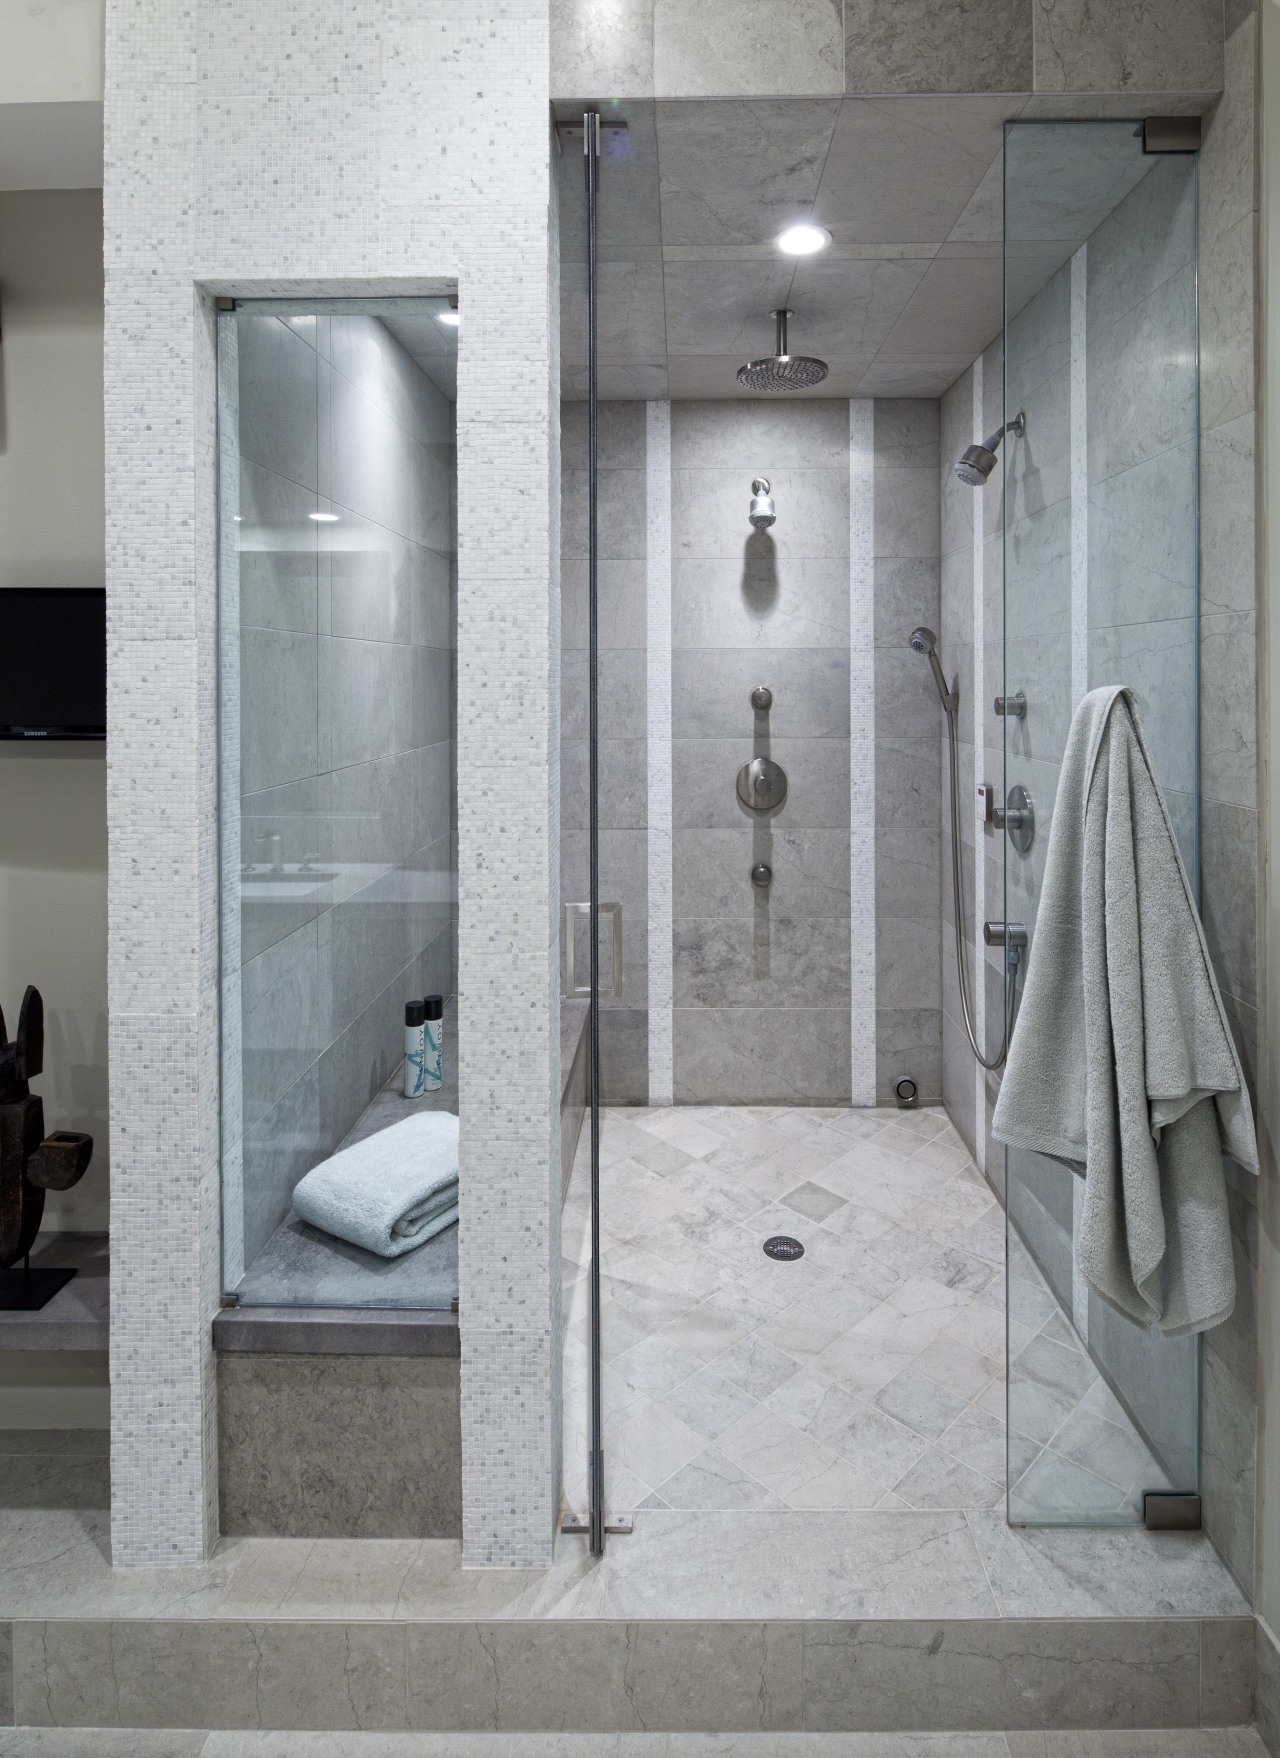 To add interest to this new shower area, bathroom, floor, interior design, plumbing fixture, room, shower, tile, gray